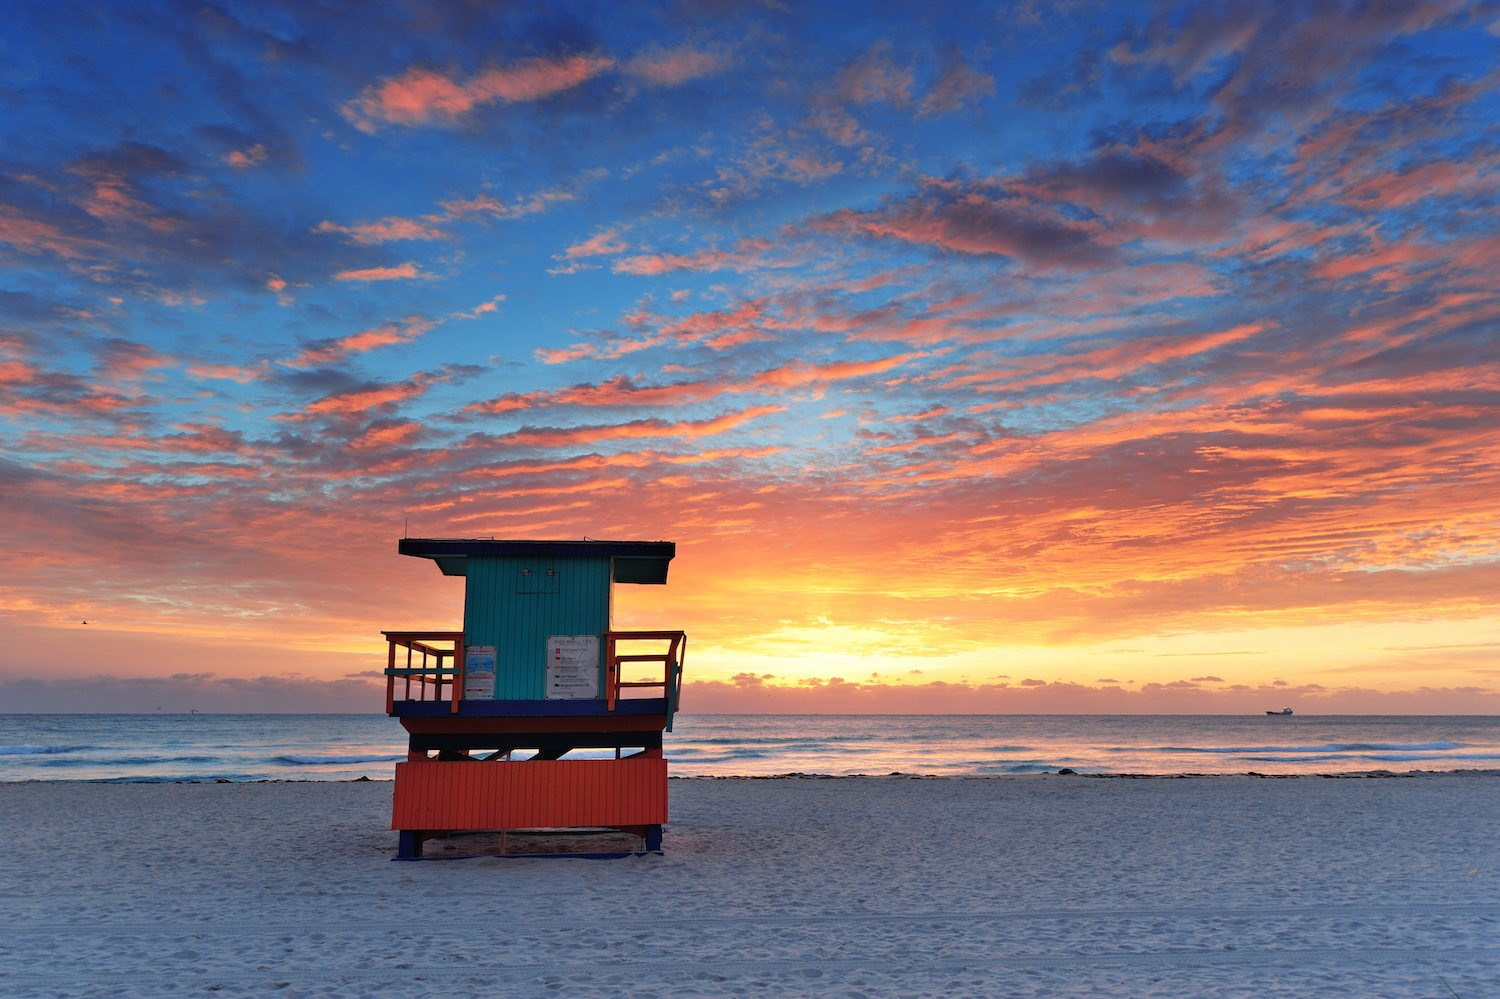 Ultimate Romantic Road Trip: Sunrise & Sunset in Florida